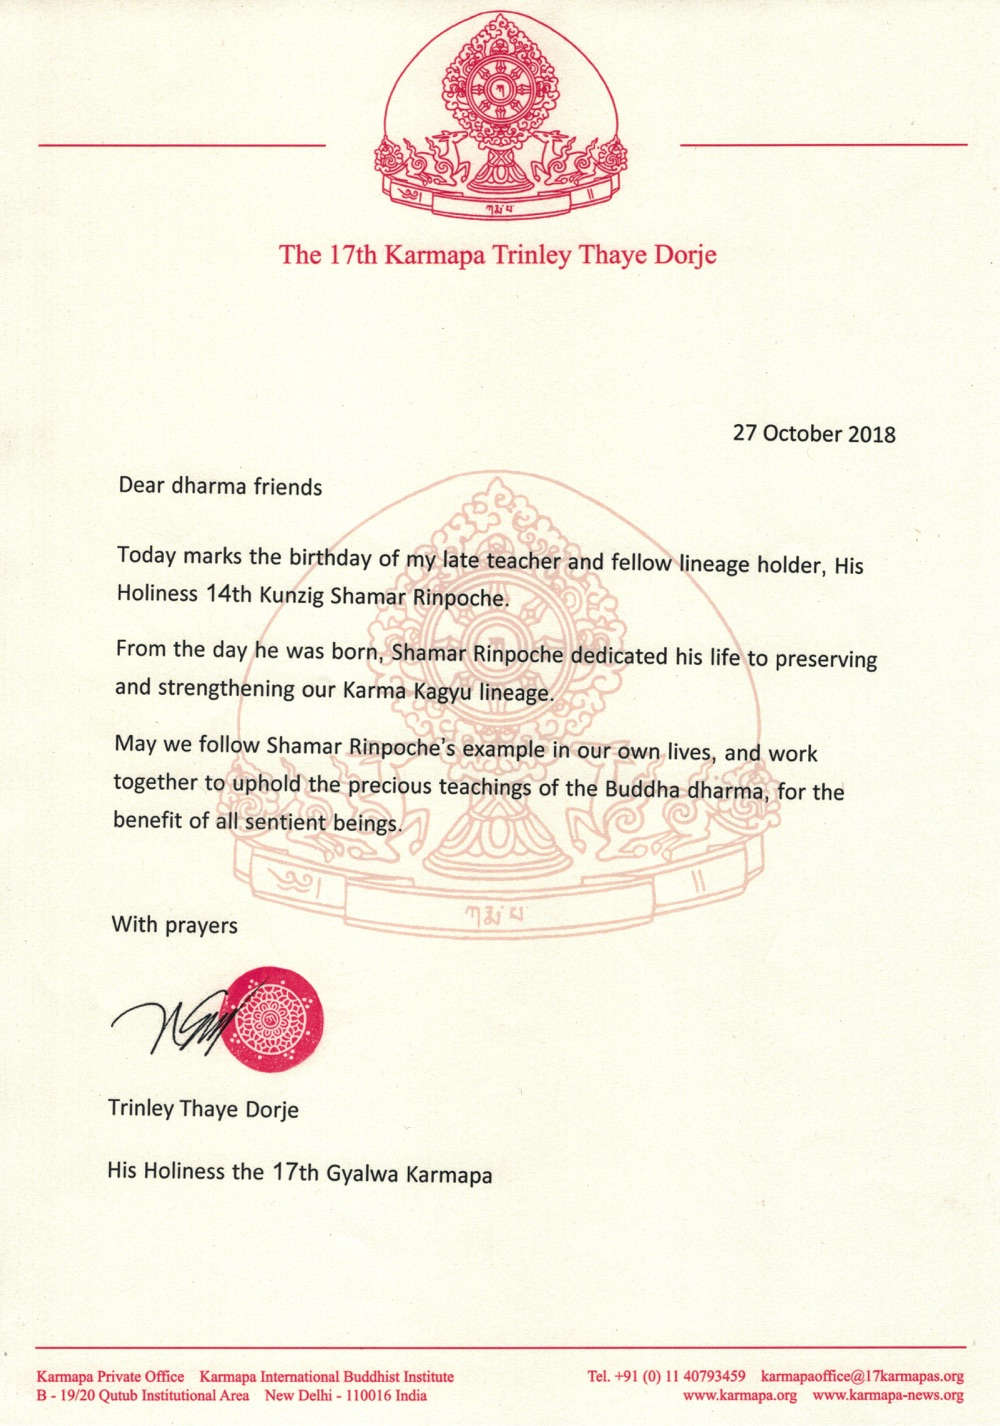 letter from thaye dorje his holiness the 17th gyalwa karmapa on the occasion of